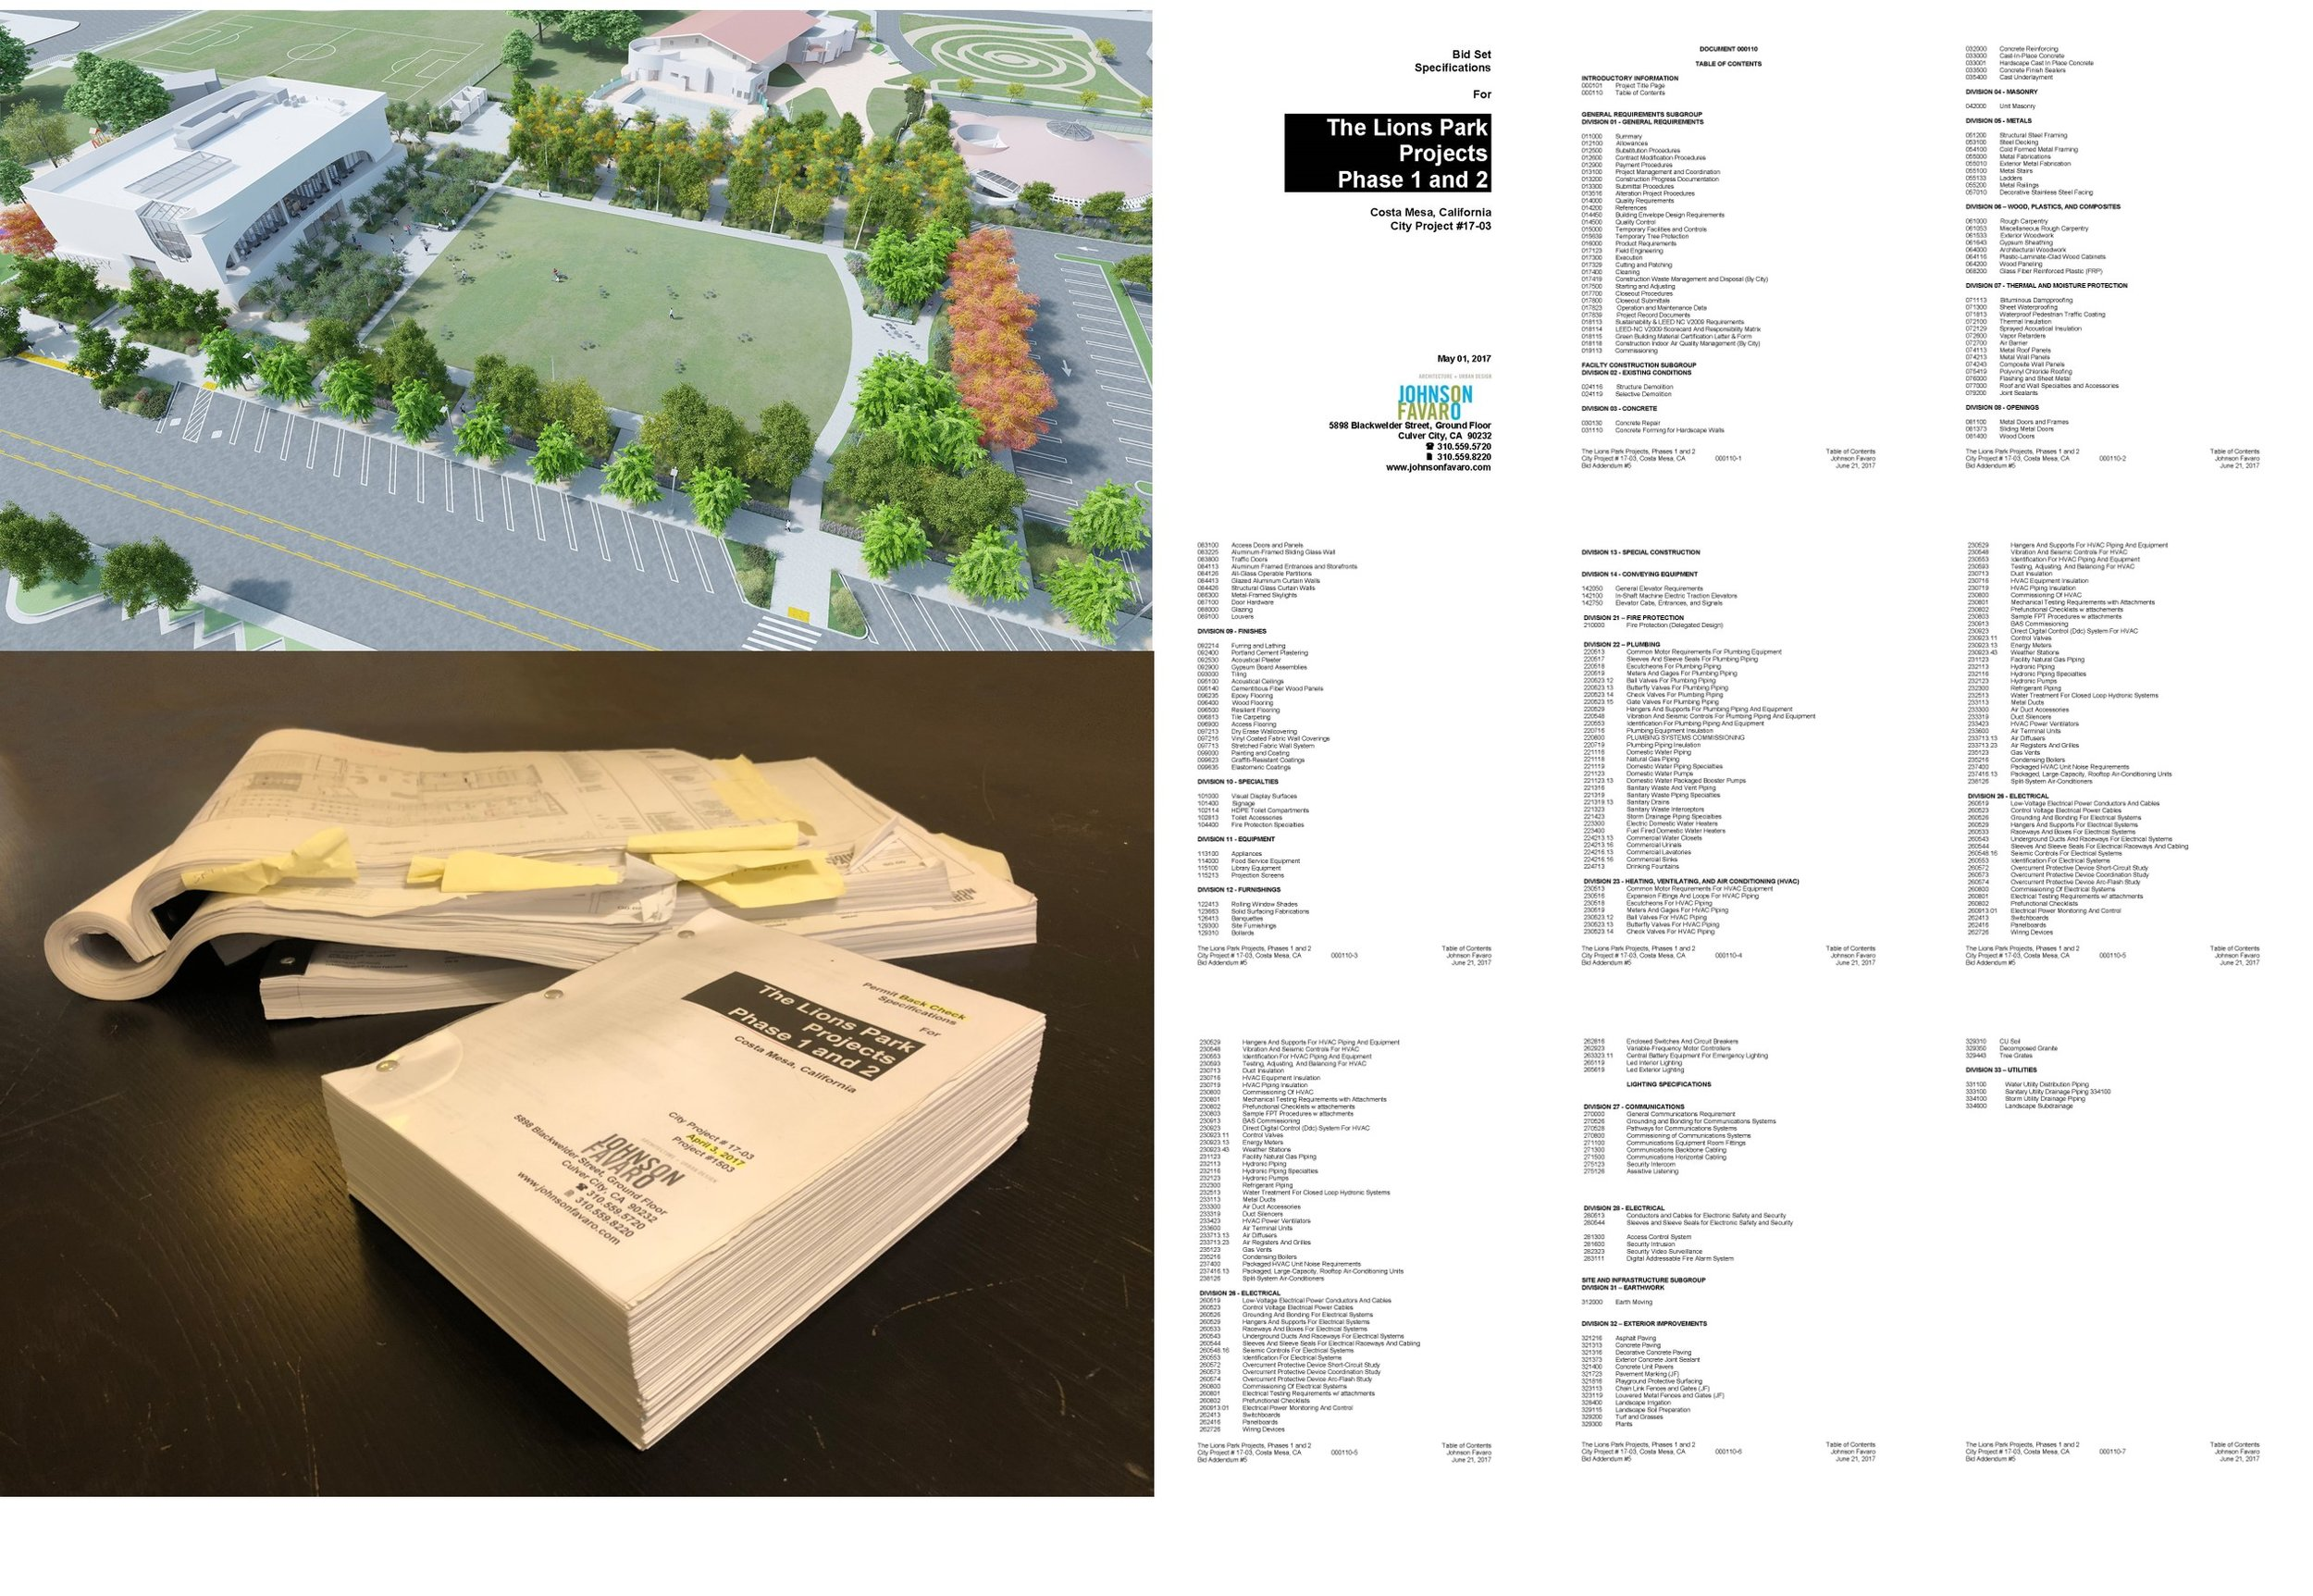 """In addition to graphic descriptions of a building, the drawings, there are narrative and numerical descriptions called """"specifications"""" that describe all of the systems, performance criteria and details of the building. The specifications for the Costa Mesa Library project comprise nearly 2,100 pages. The table of contents alone is eight pages long."""